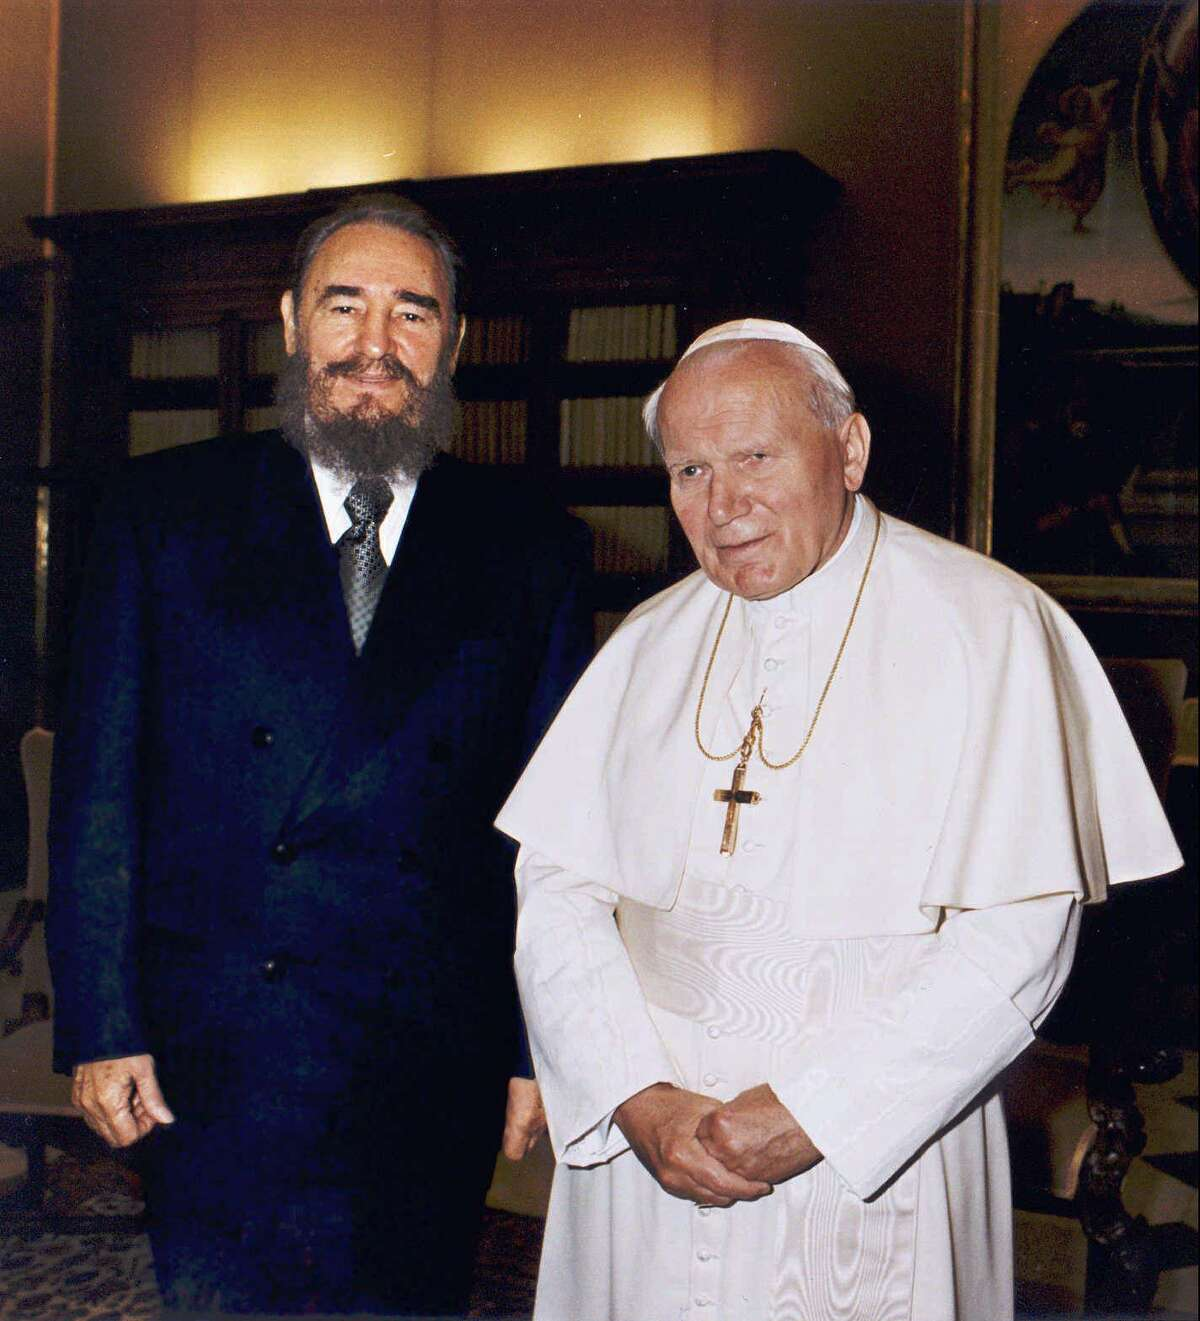 Cuban leader Fidel Castro and Pope John Paul II during their historic meeting at the Vatican Tuesday, November 19, 1996. Following Castro's invitation to visit Cuba, the only Latin American country that the 76-year-old pope has yet to visit, the Pope will leave for Cuba Wednesday, January 21 1998, for a five-day official trip. (AP Photo/Arturo Mari)